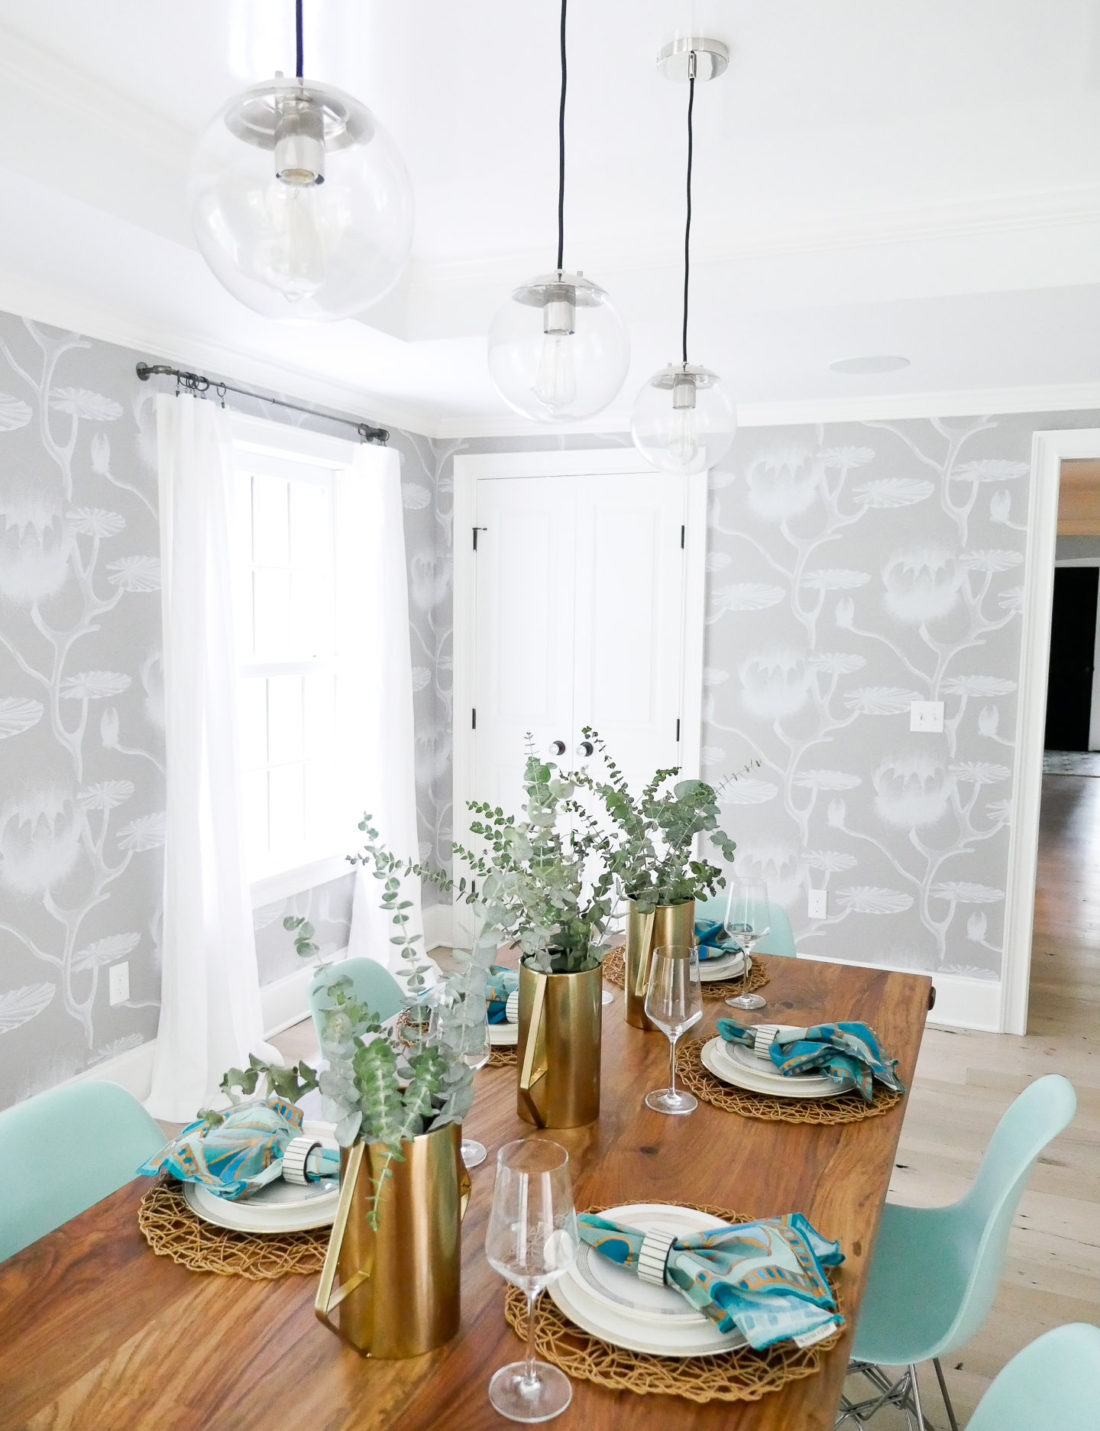 A shot of the fully set table in Eva Amurri Martino's bright and airy california-inspired dining room in connecticut